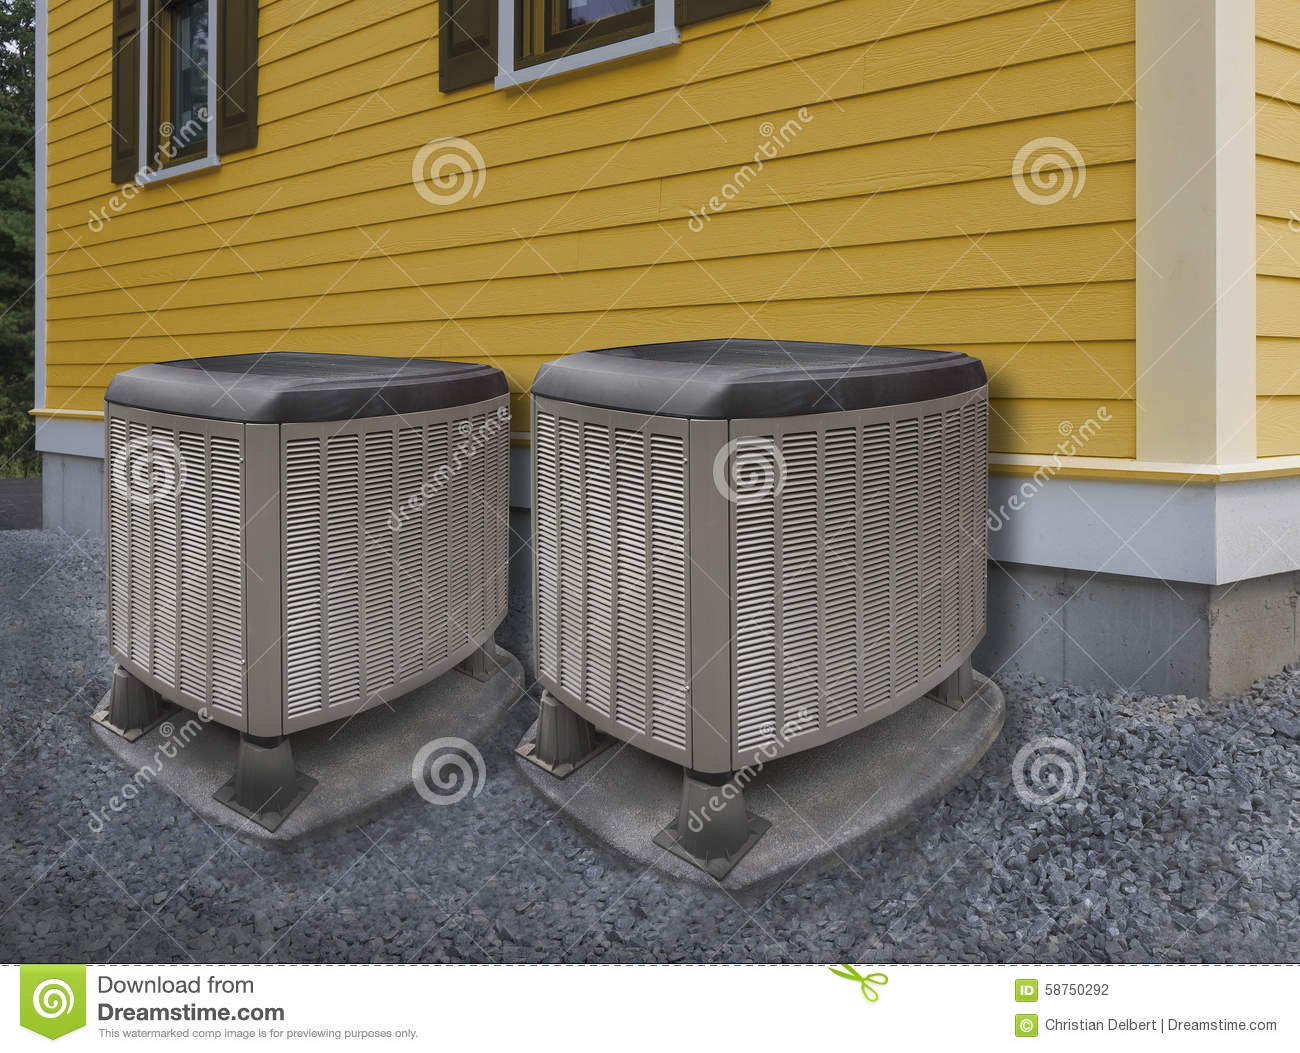 #94762D Heating And Air Conditioning Units Stock Photo Image  2017 13332 Outside Heating And Air Conditioning Unit photo with 1300x1053 px on helpvideos.info - Air Conditioners, Air Coolers and more